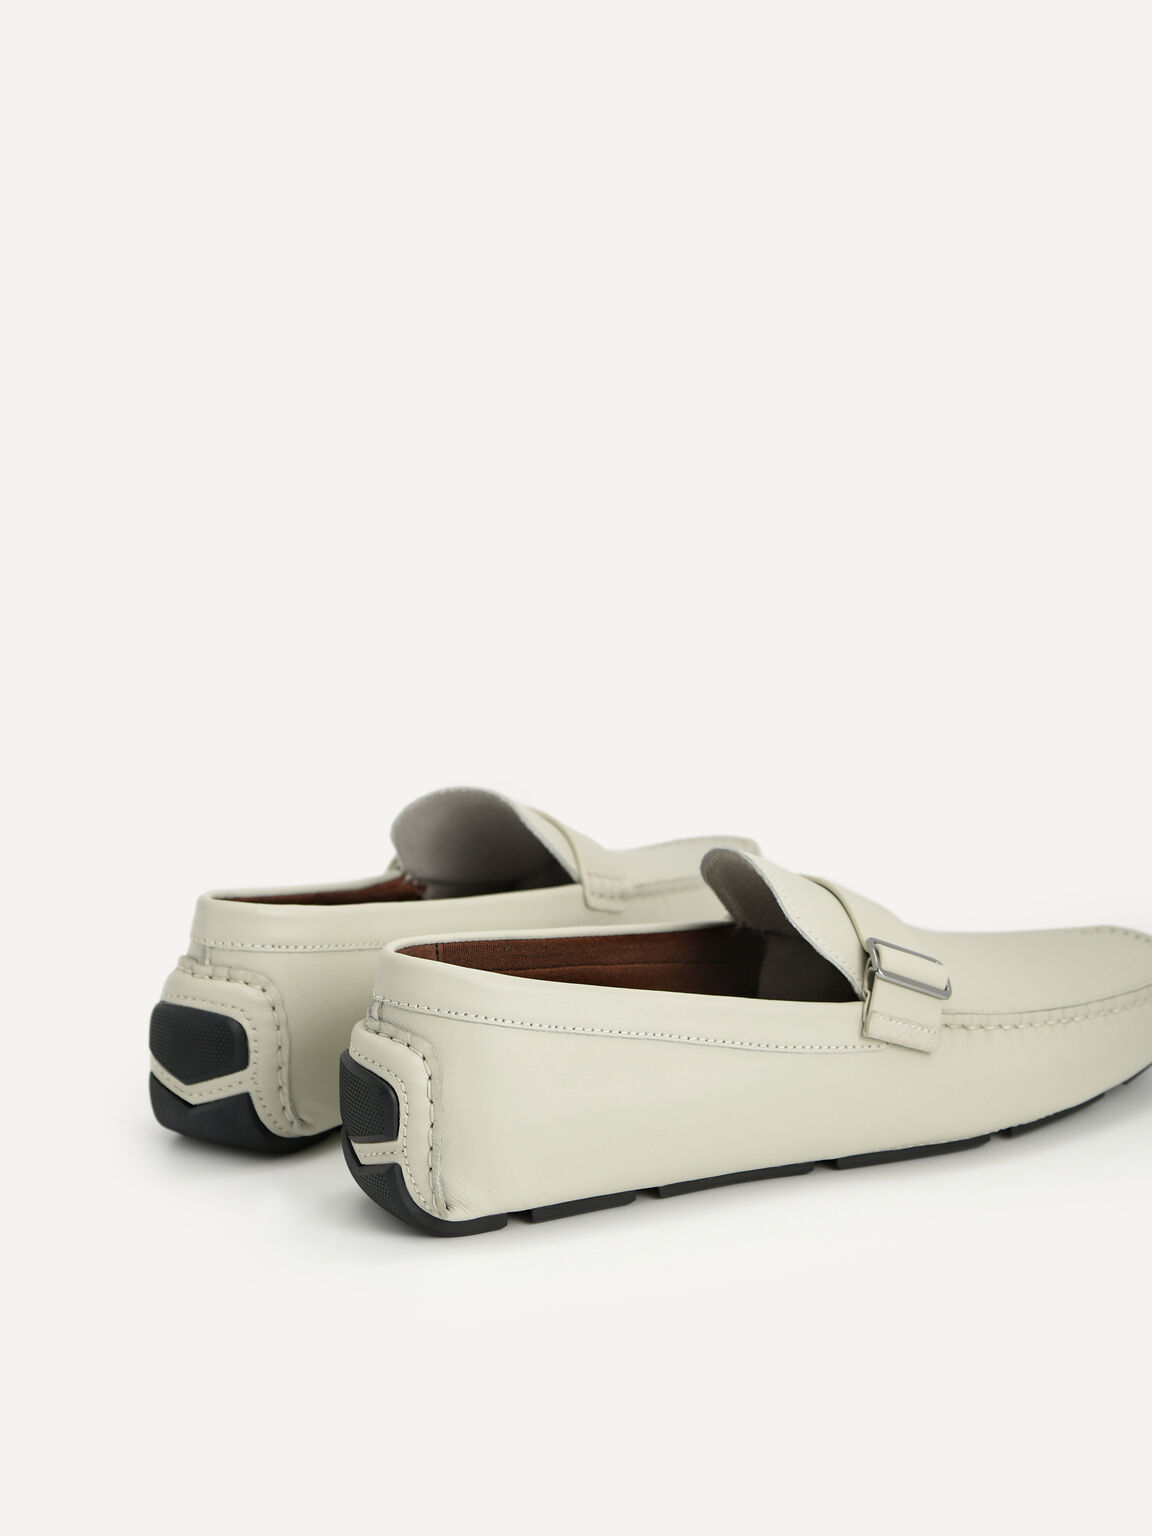 Leather Moccasins with Buckle Detail, Light Grey, hi-res